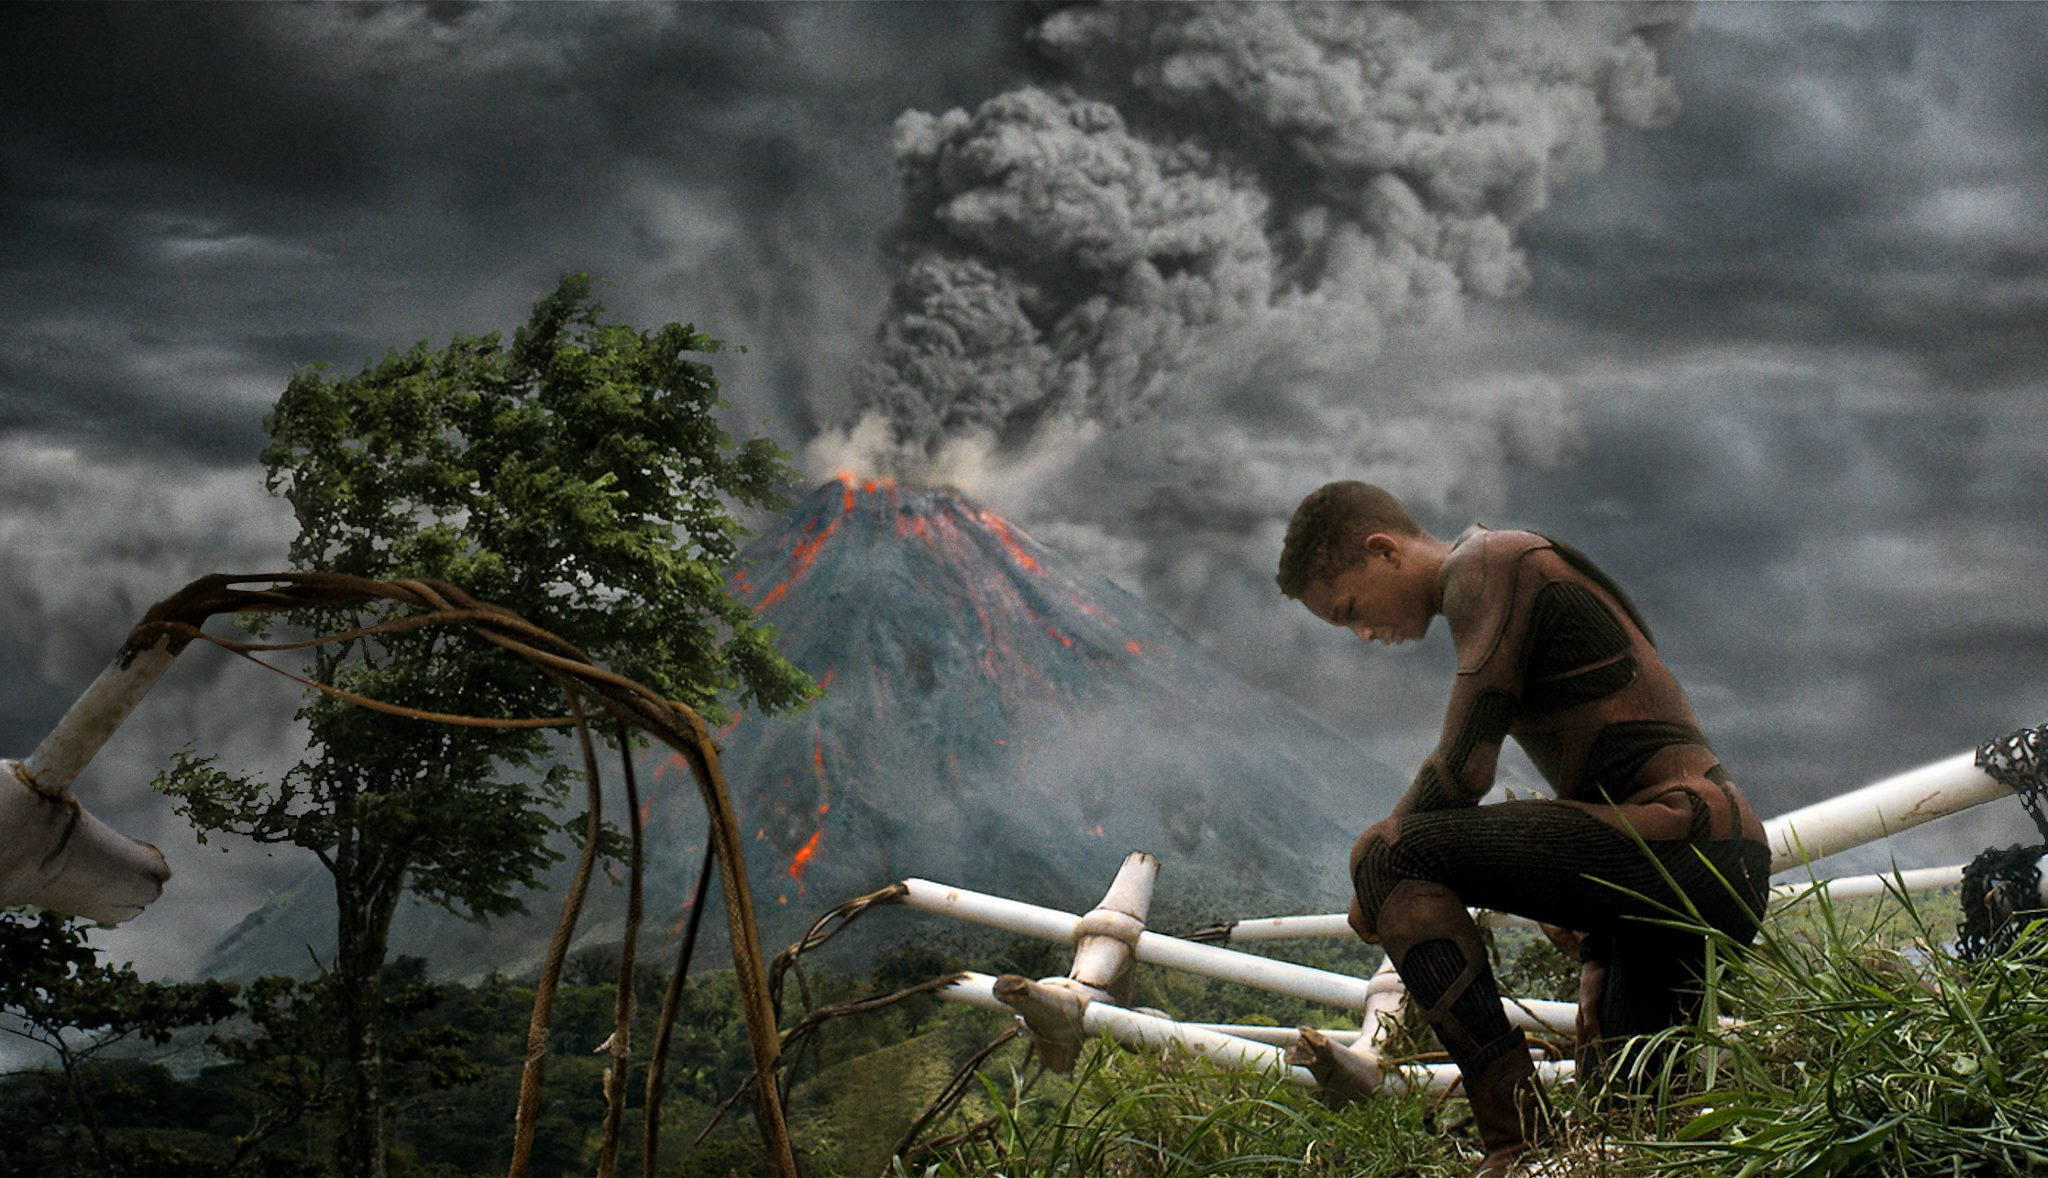 Jaden Smith - journeying across a primal landscape in After Earth (2013)